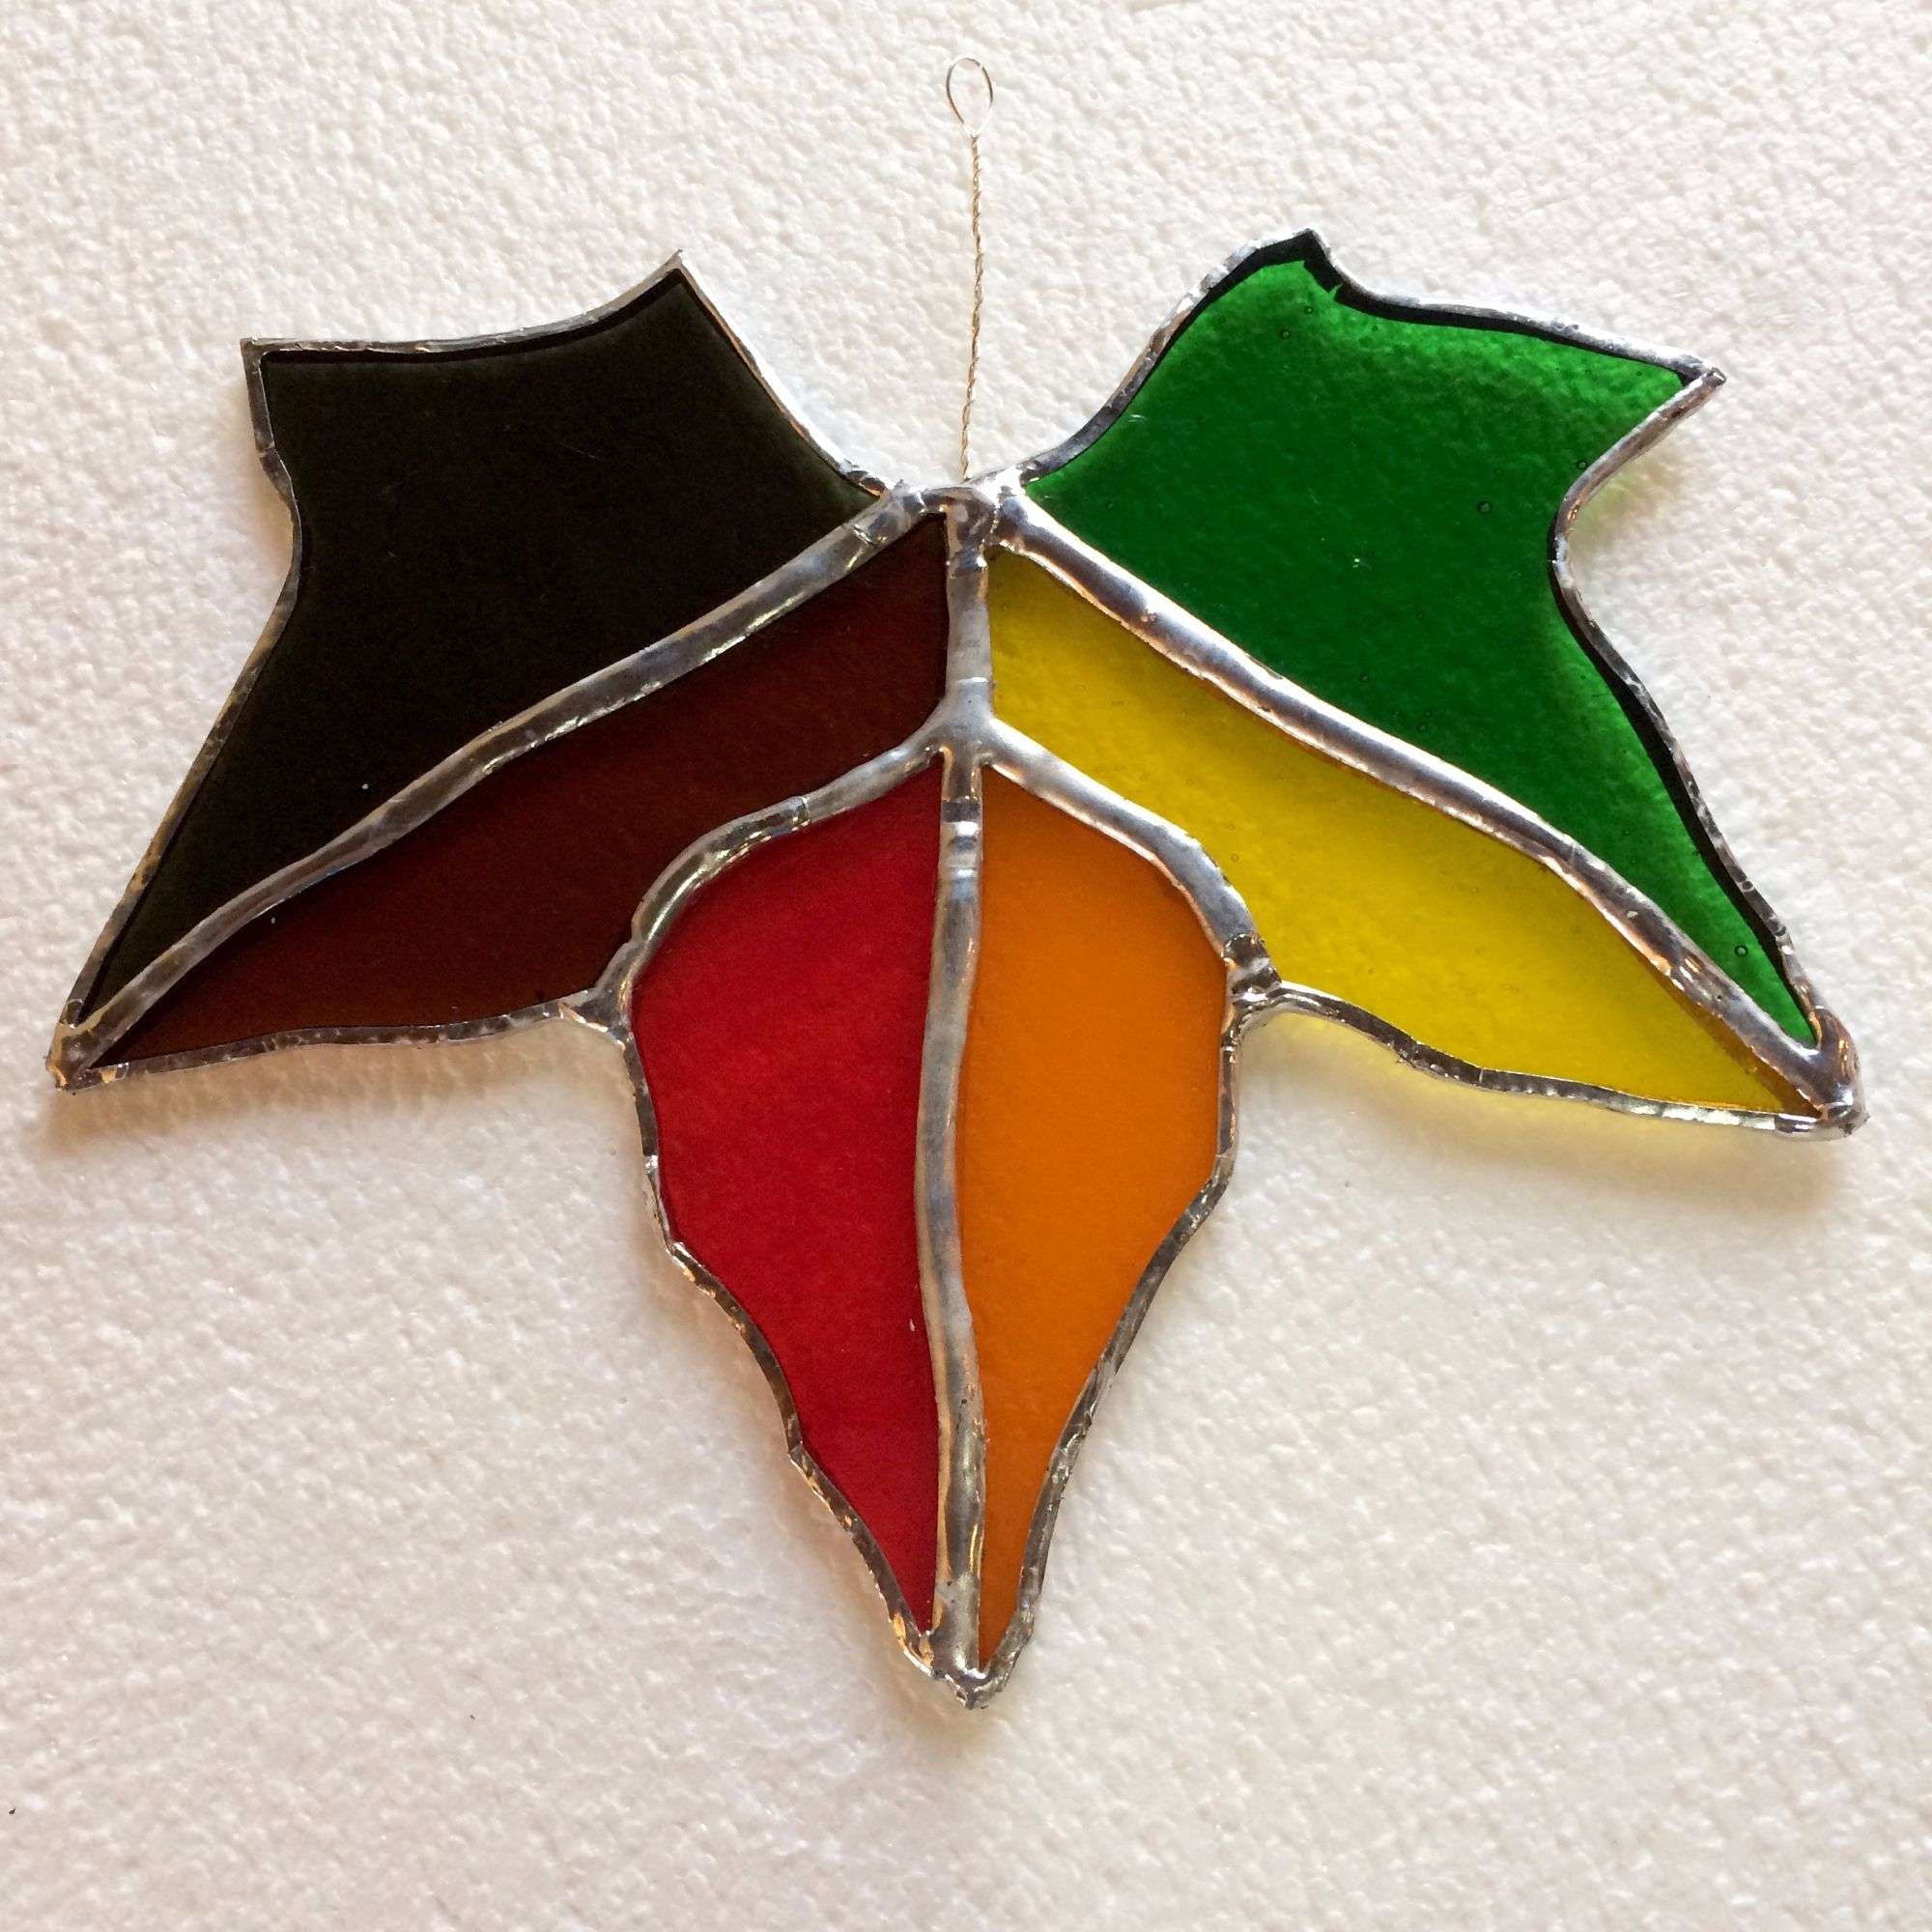 Stained Glass Workshop - Maple Leaf